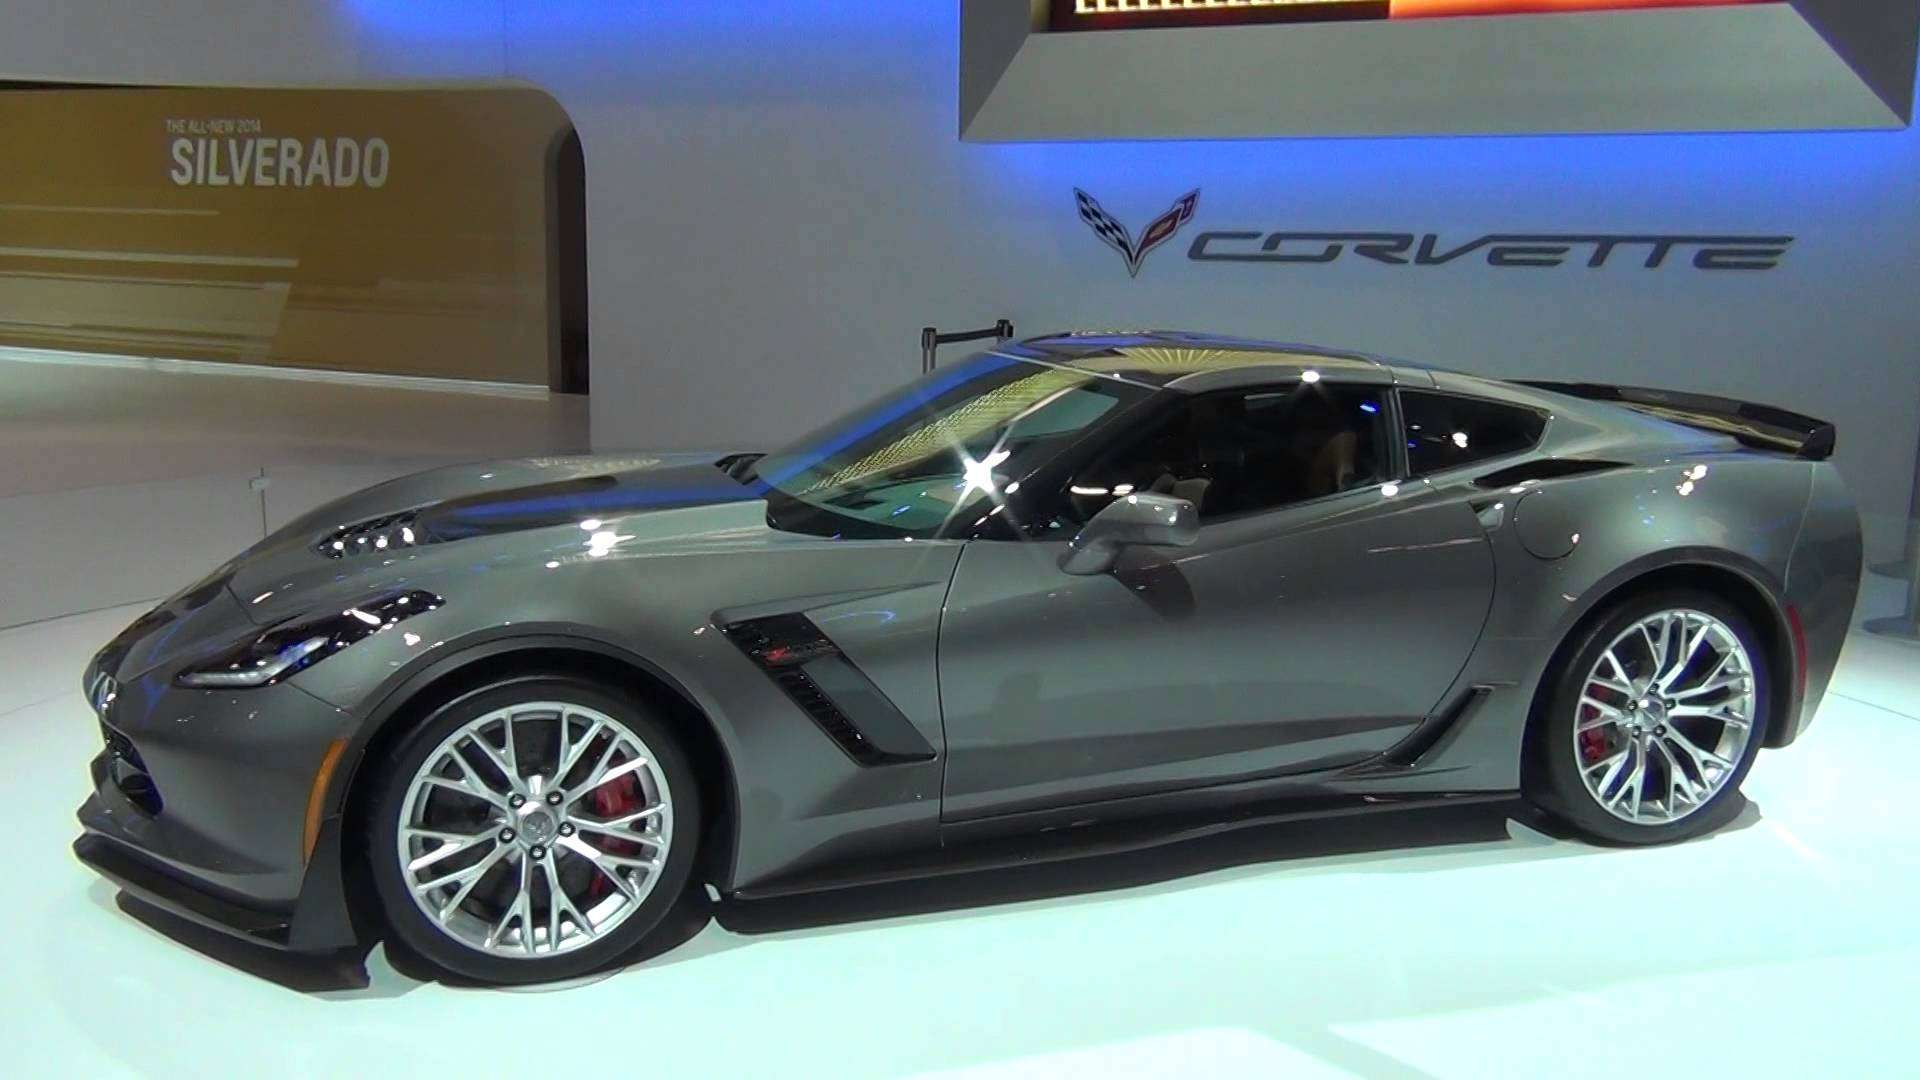 Corvette HD Wallpapers 1080p - WallpaperSafari | 1920 x 1080 jpeg 113kB